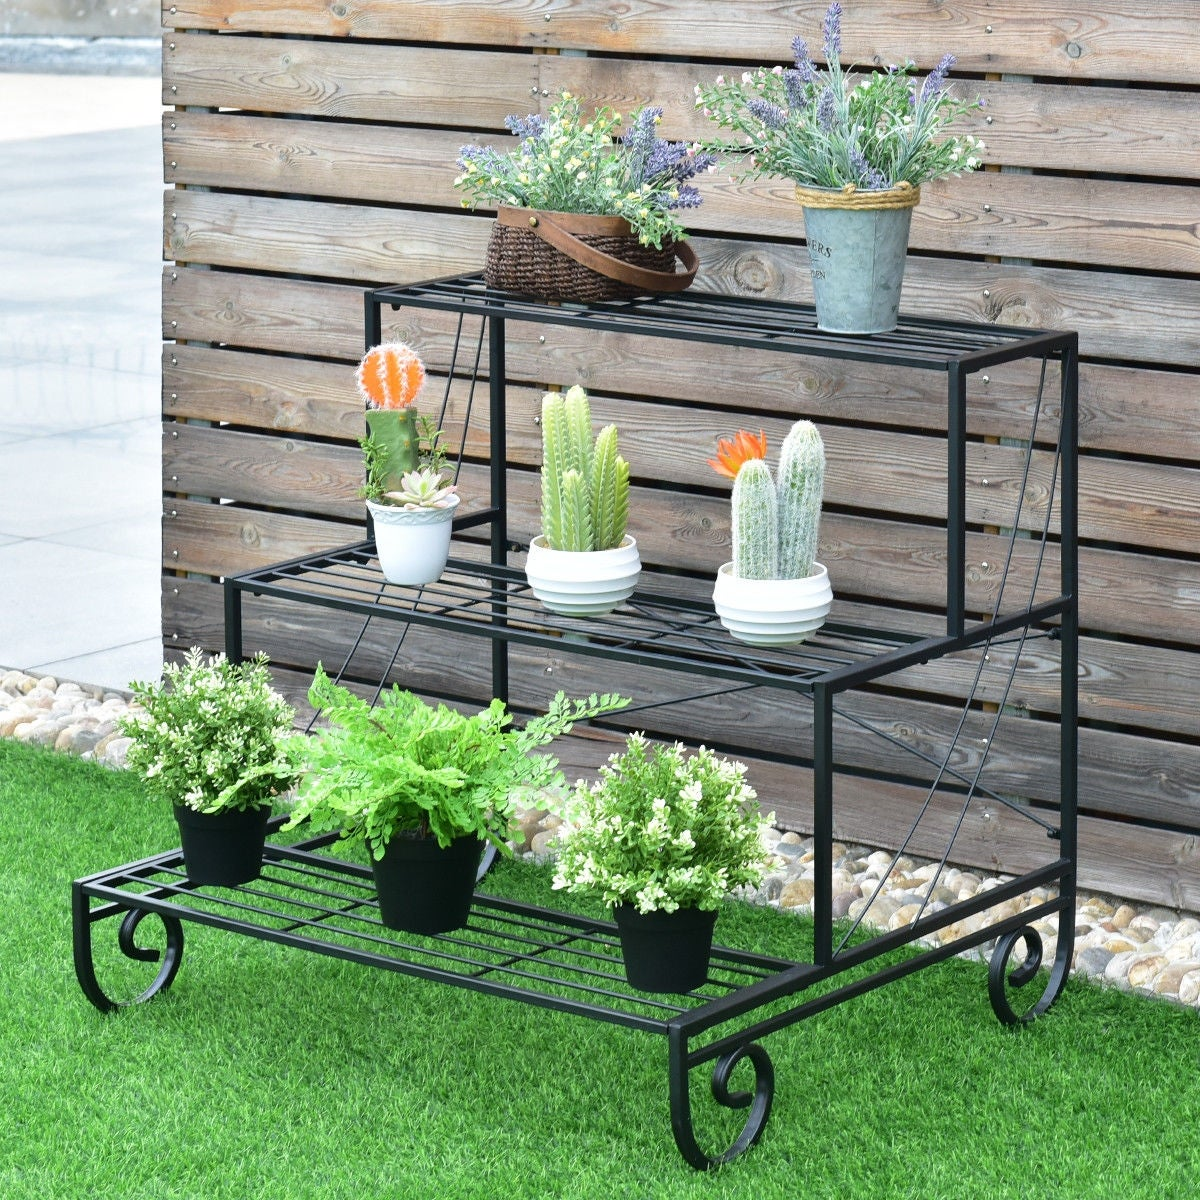 Costway 3 Tier Outdoor Metal Plant Stand Flower Planter Garden Display Holder Shelf Rack Black Free Shipping Today 18730563